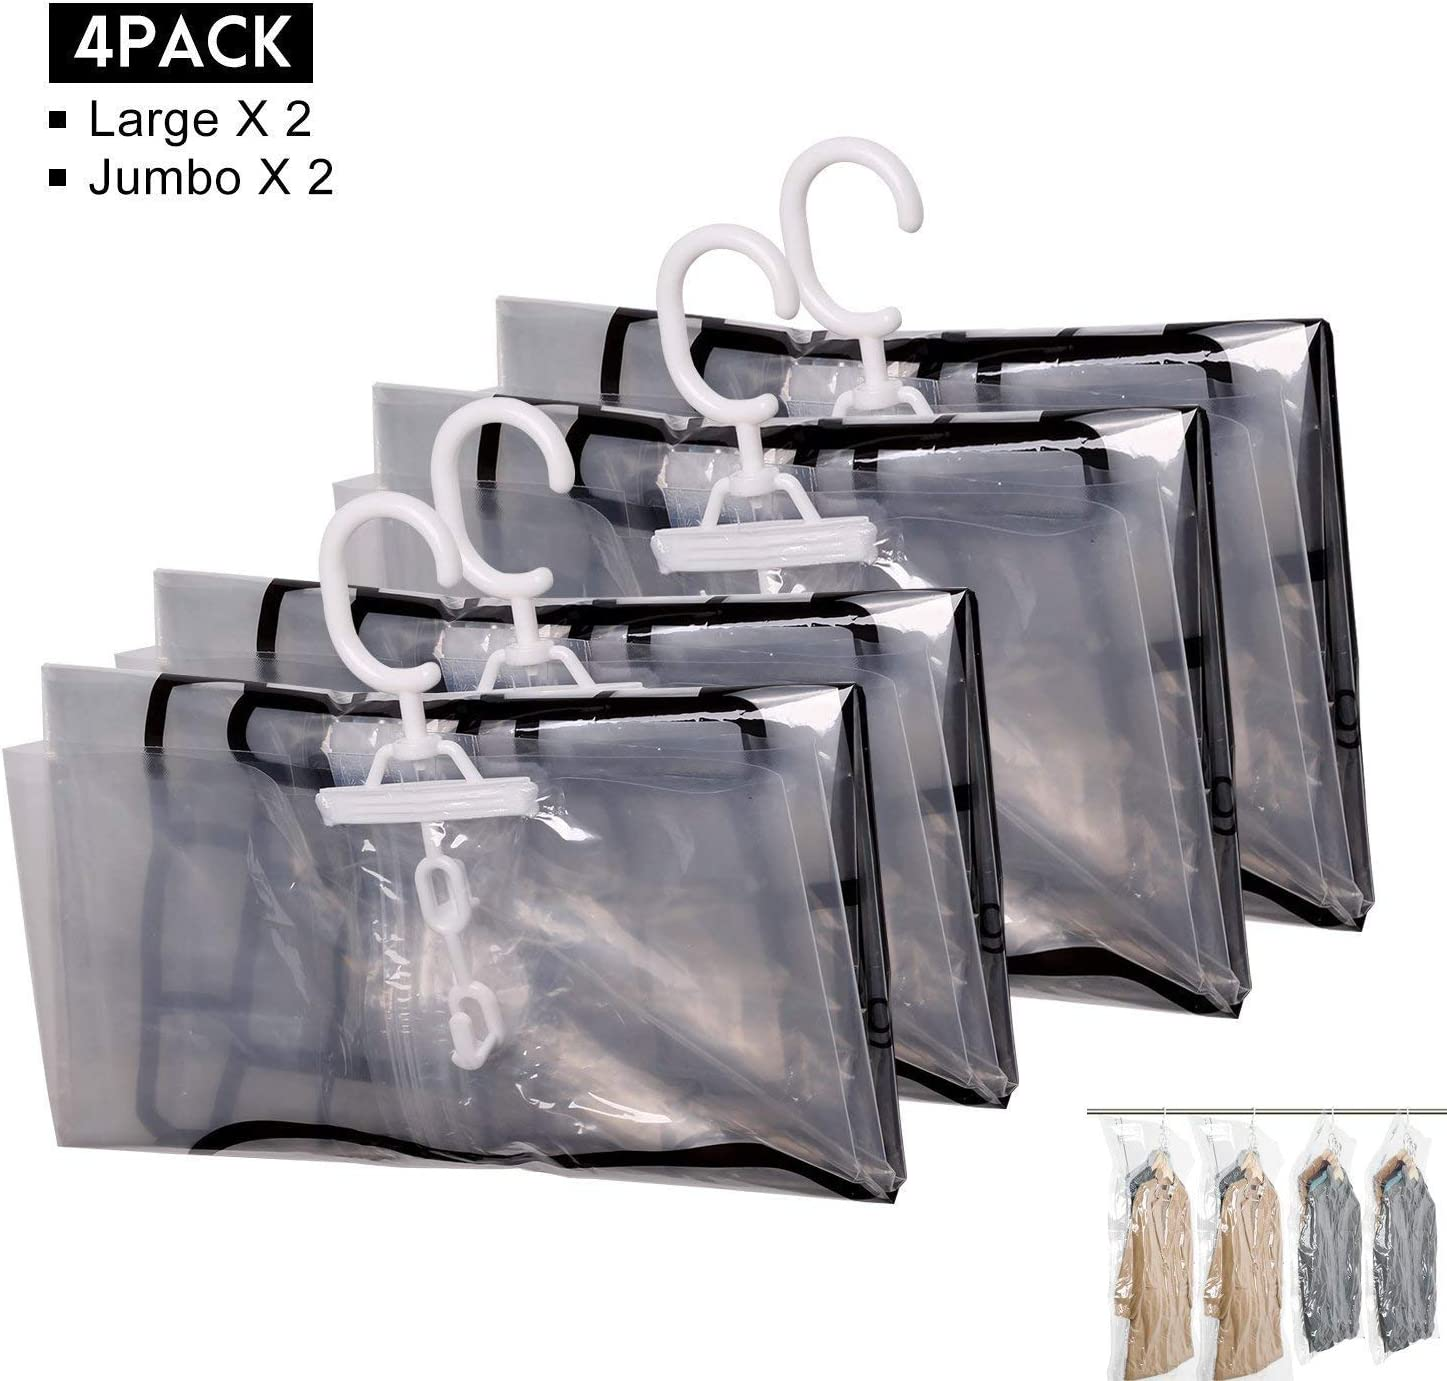 Hanging Vacuum Storage Bags, FoolHome Space Saver Bags for Clothes, Duvets, Pillows & Travel Luggage, 4 Pack(2xJumbo, 2xLarge)